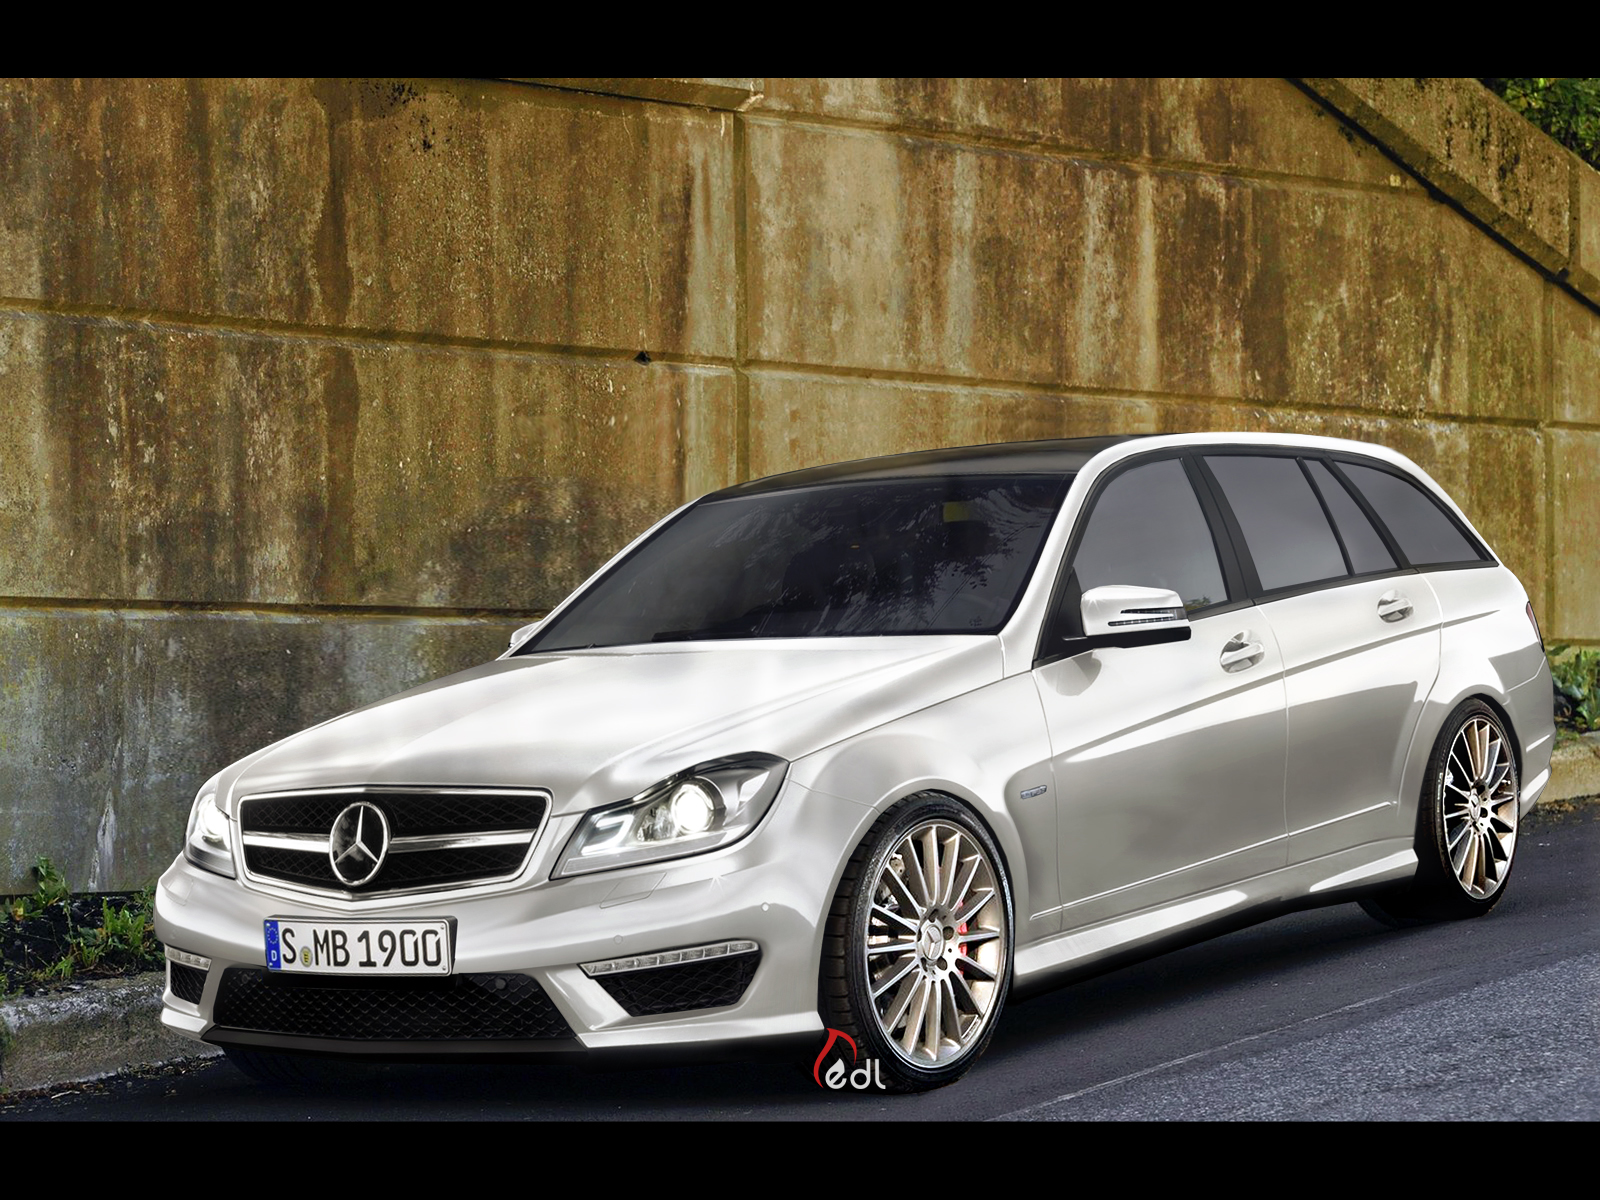 mercedes benz c class 2012 amg by edldesign on deviantart. Black Bedroom Furniture Sets. Home Design Ideas